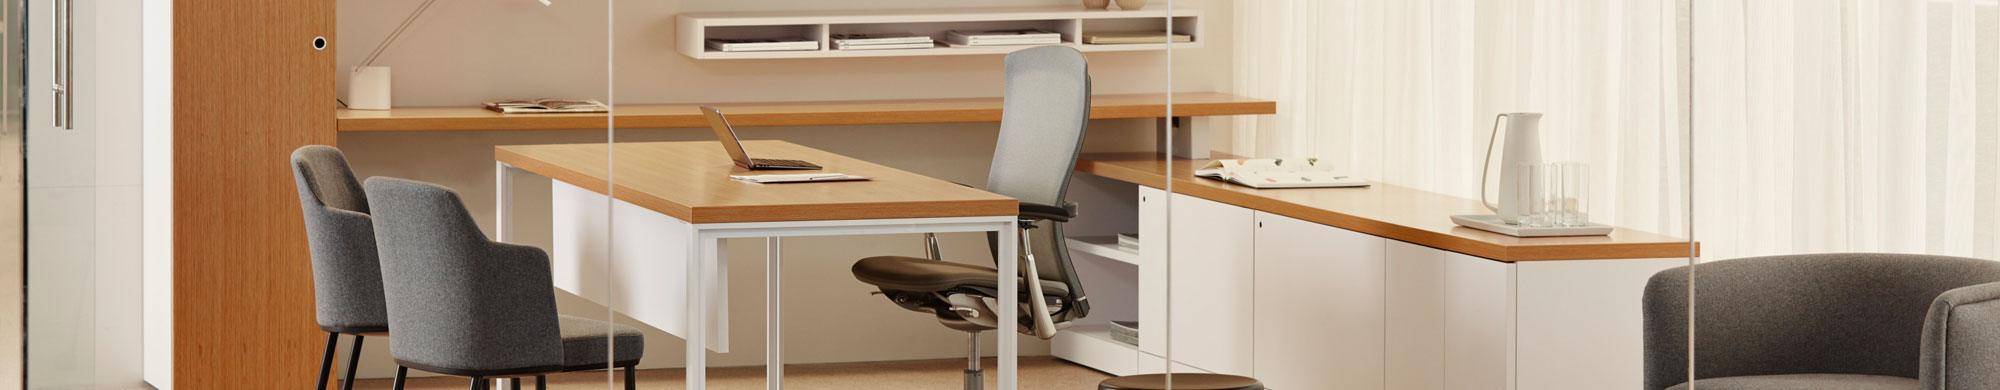 Knoll Seating Portfolio for Office and Workplace Environments